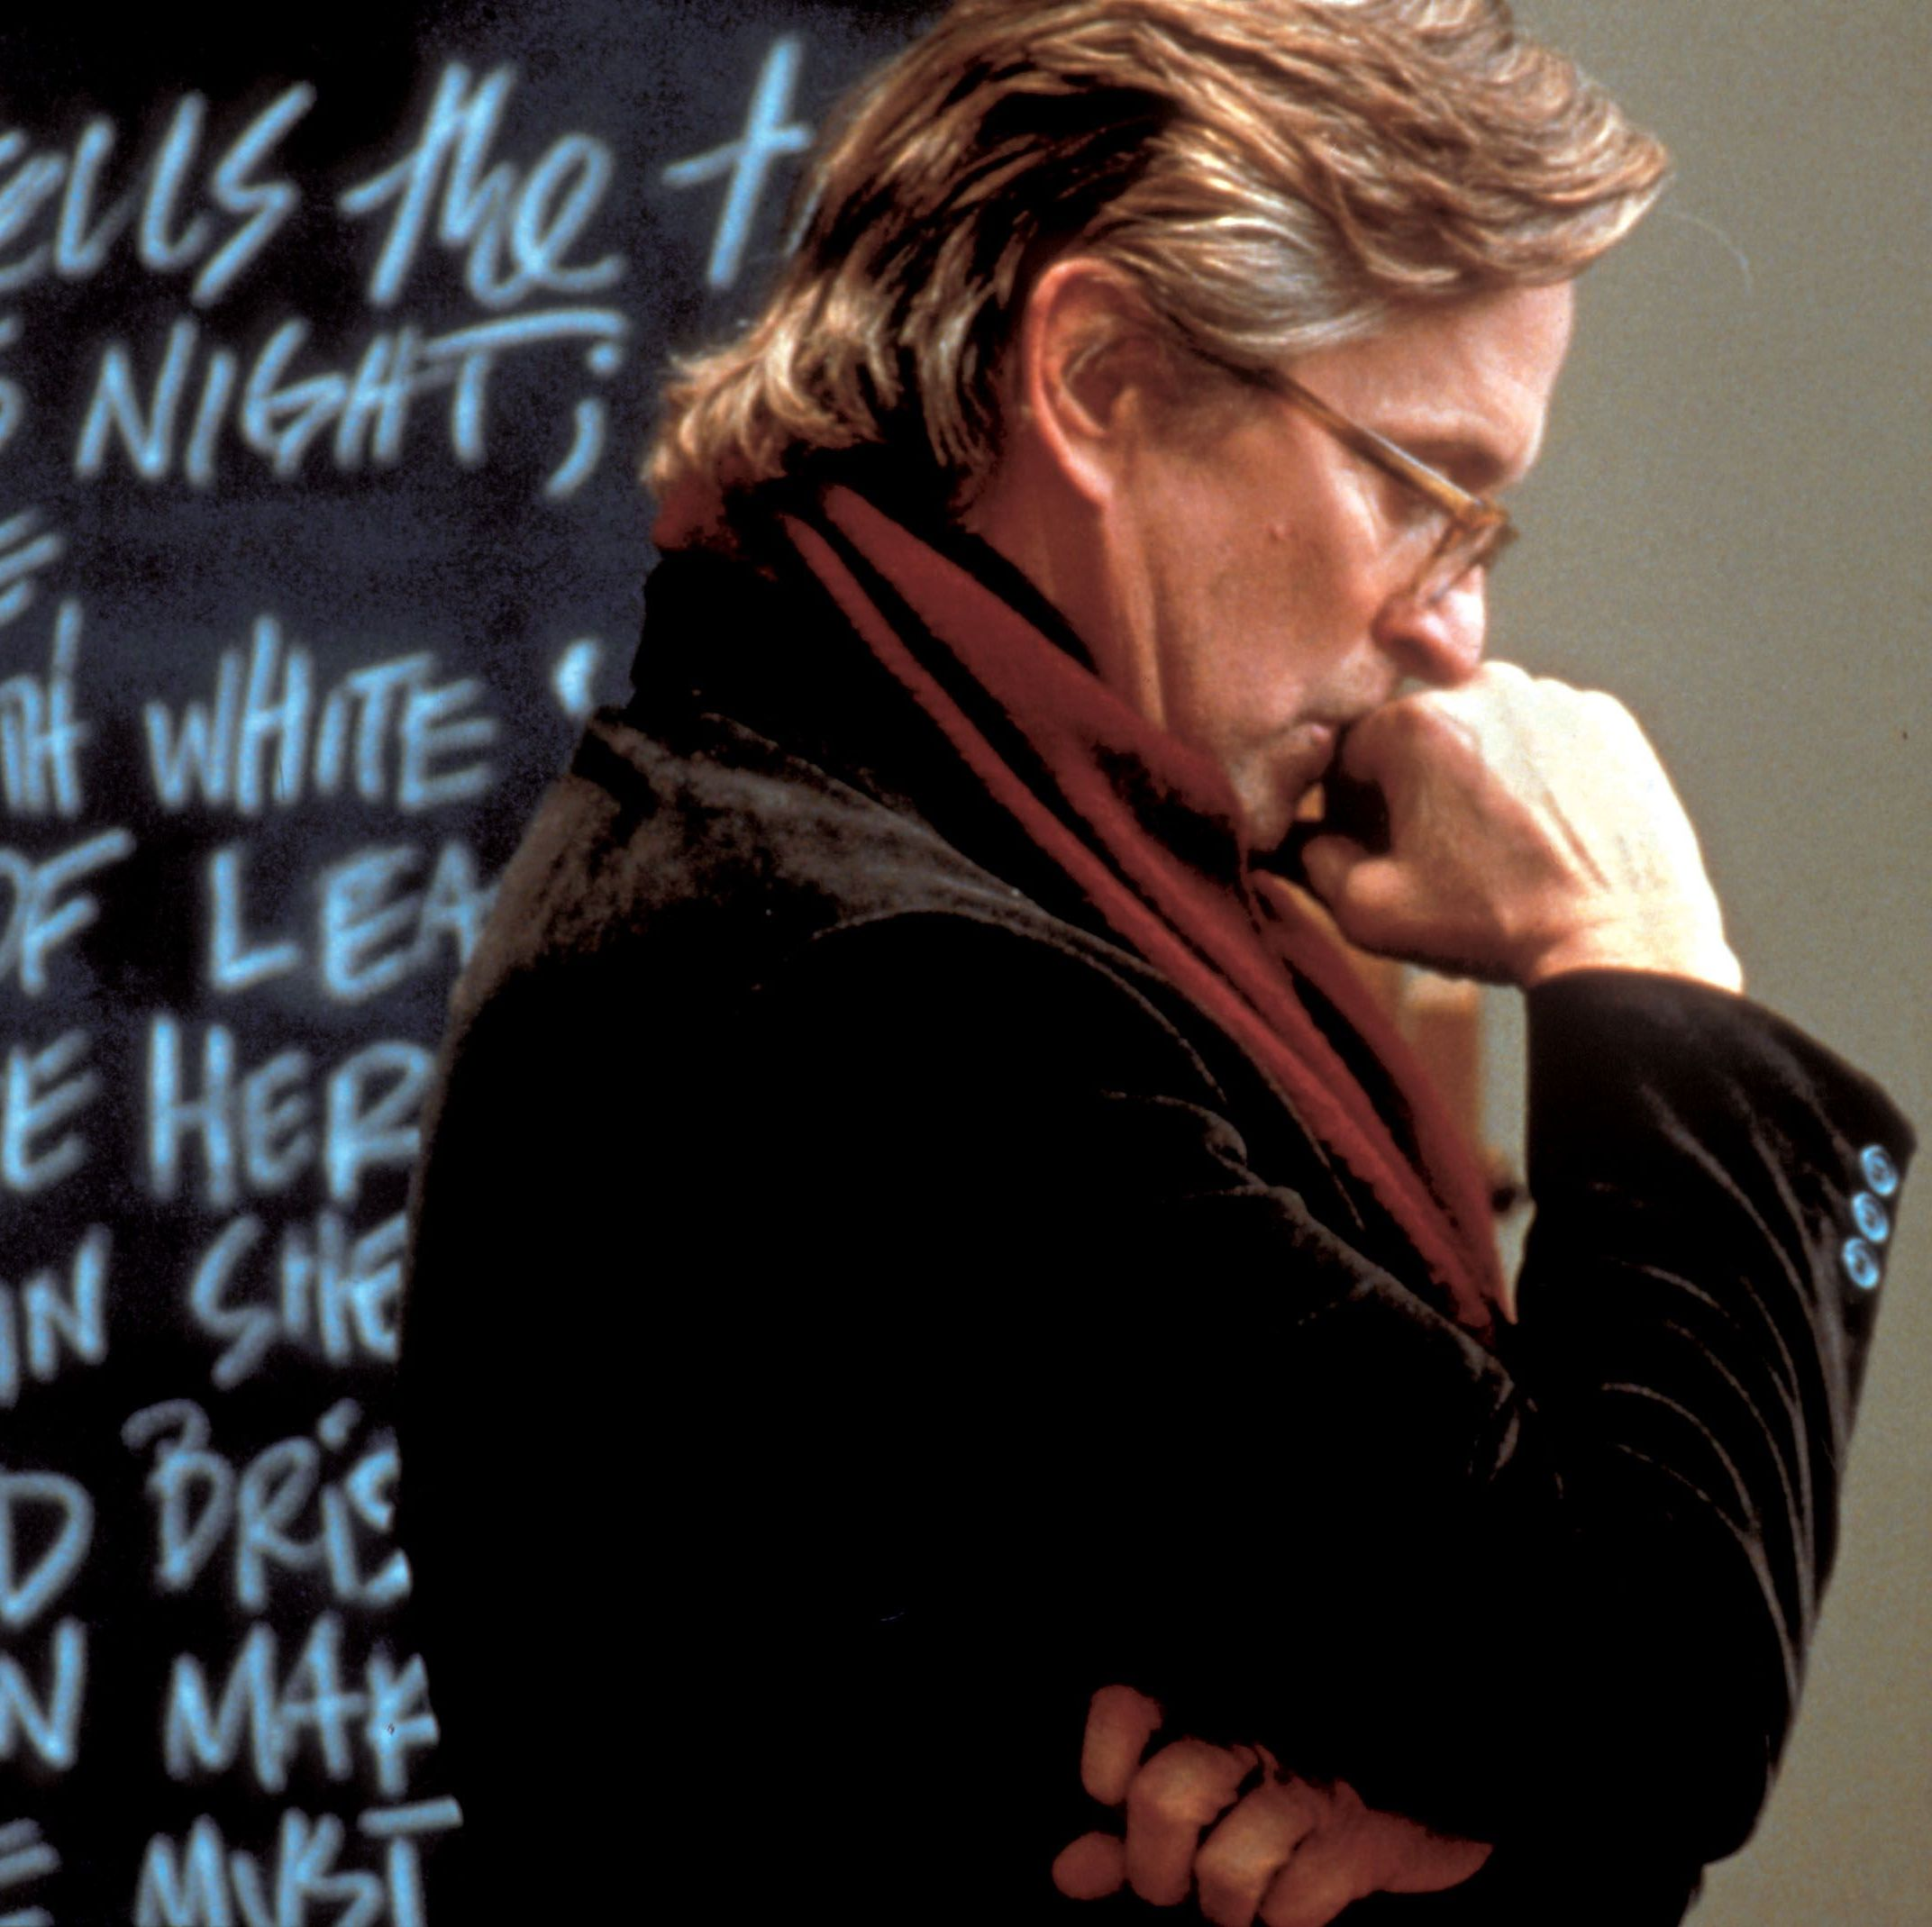 Wonder Boys Michael Douglas is a creative writing professor struggling to finish the follow-up to his smash-hit debut in Curtis Hanson's great 2000 comedy, co-starring Tobey Maguire, Frances McDormand, Katie Holmes, Rip Torn, and Robert Downey Jr.